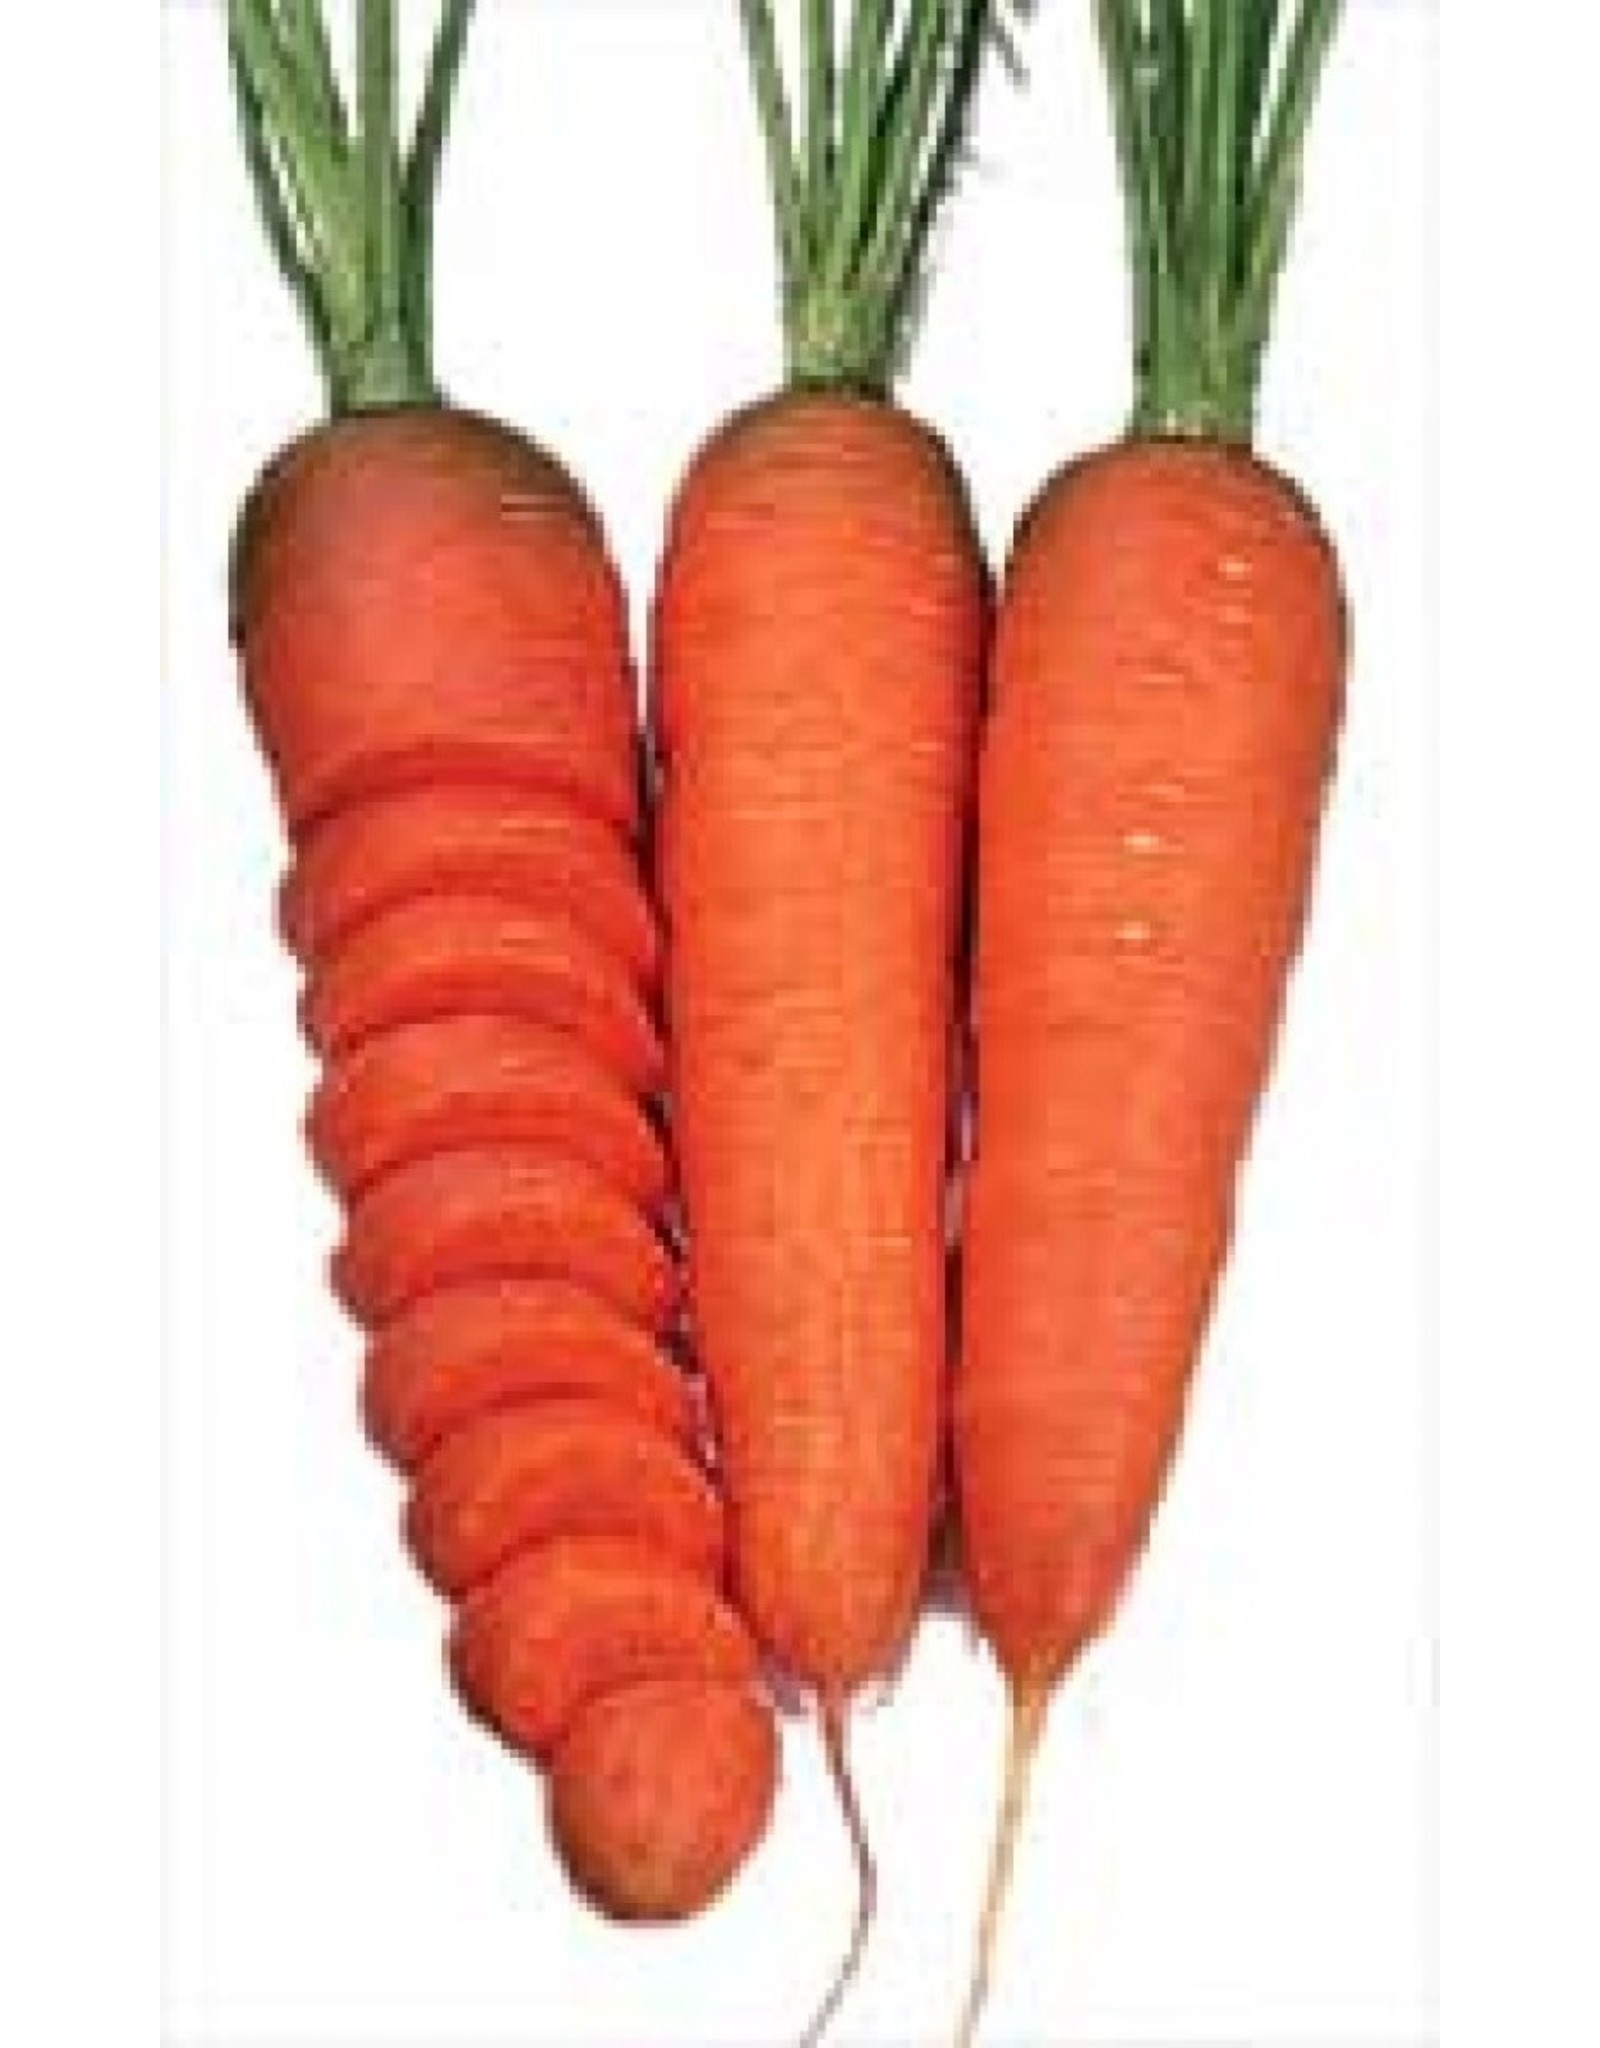 Chantenay Red Carrot Seeds 1360